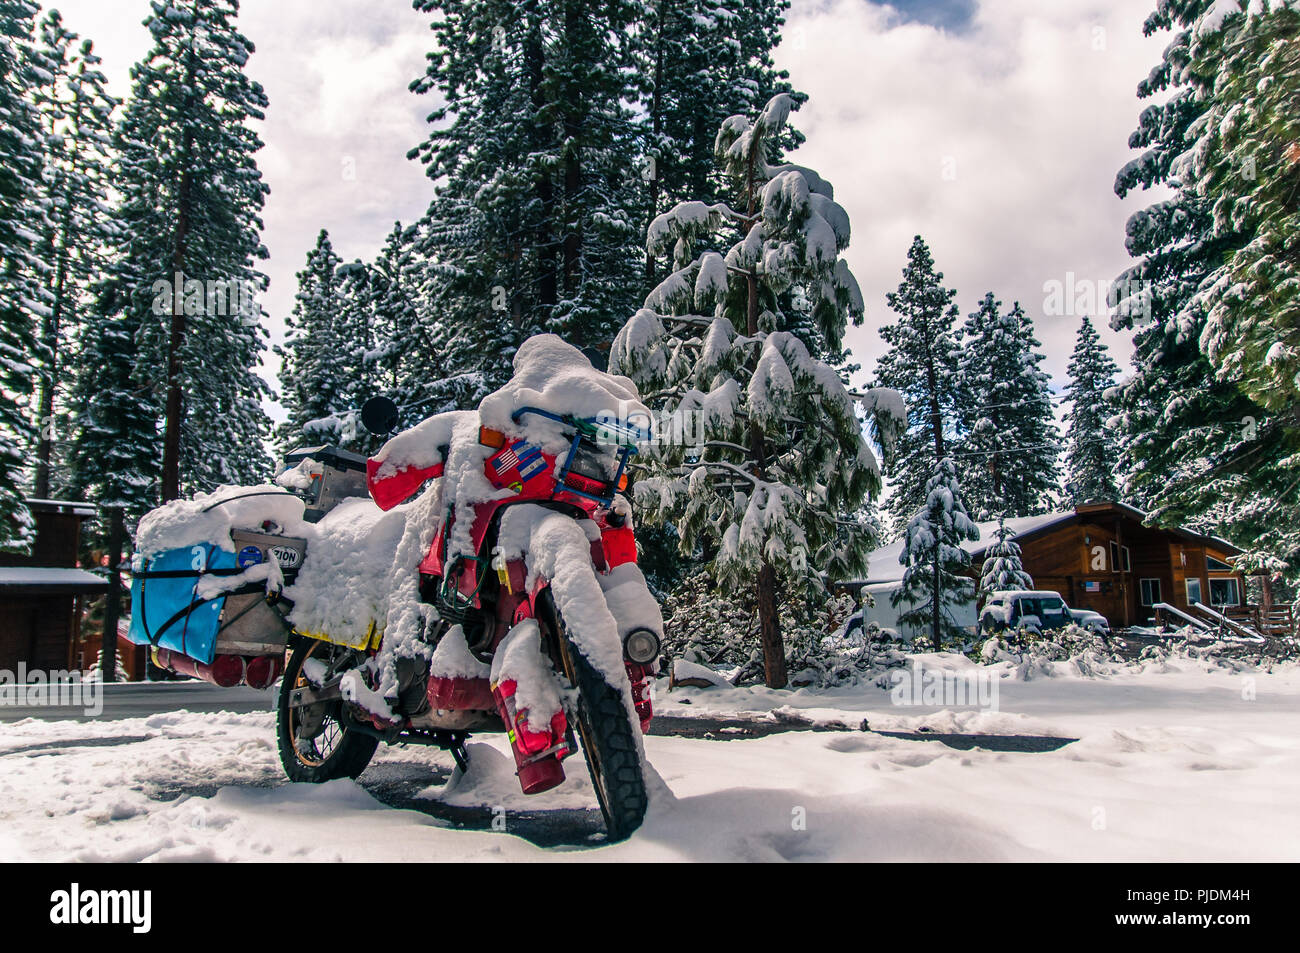 Touring bike covered in snow, Truckee, California, USA - Stock Image